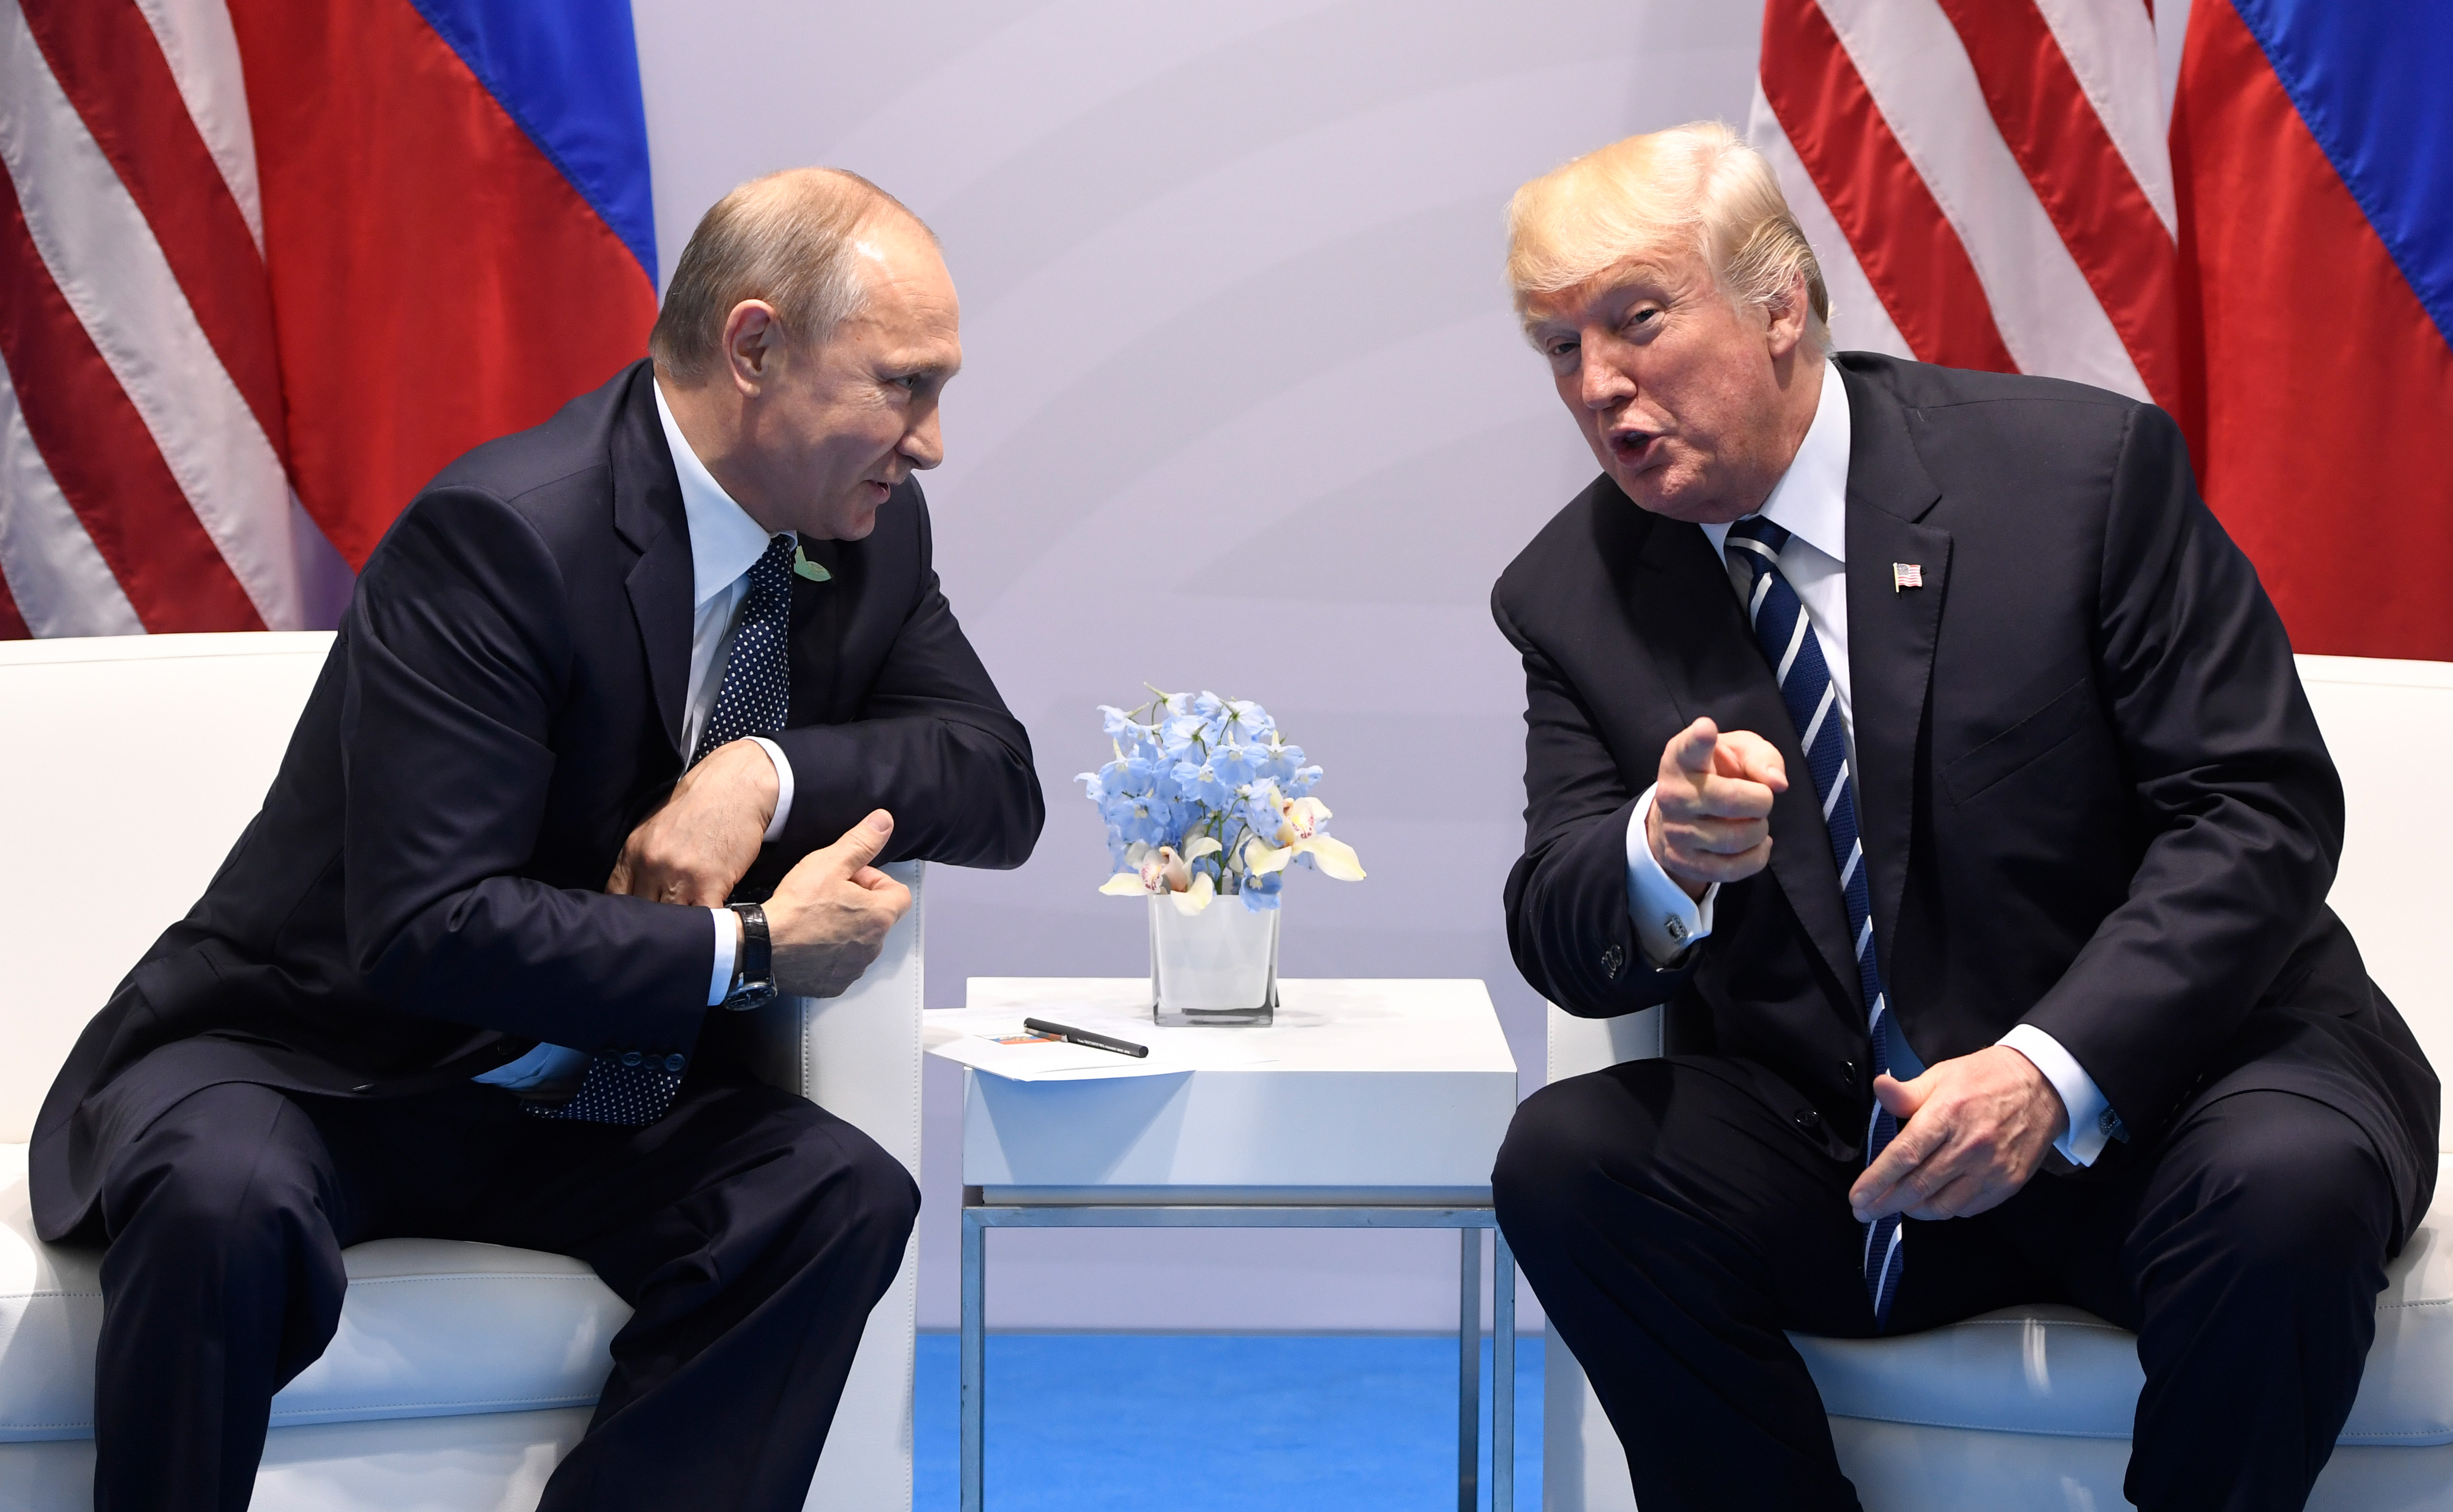 US President Donald Trump and Russia's President Vladimir Putin hold a meeting on the sidelines of the G20 Summit in Hamburg, Germany, on July 7, 2017.